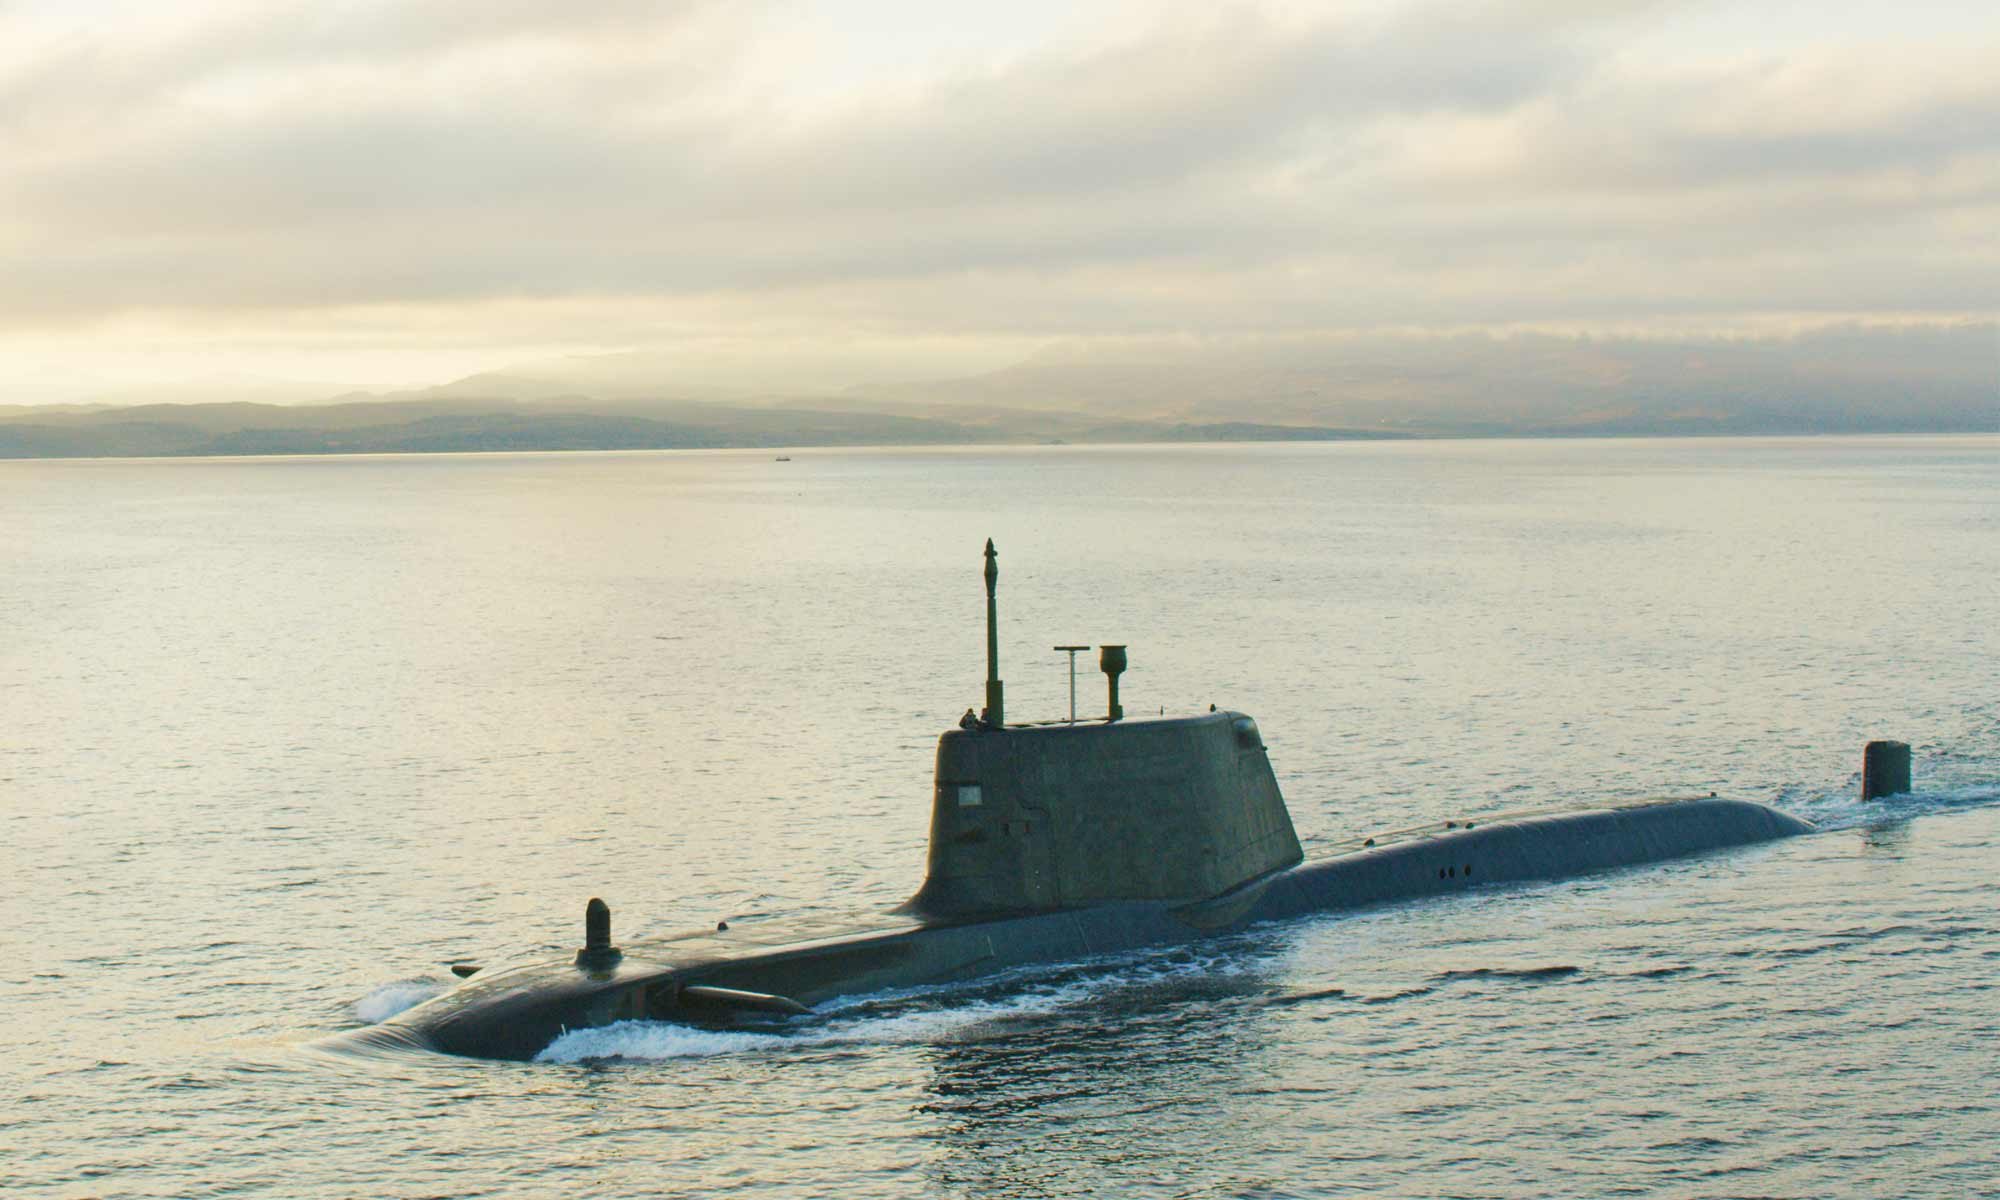 Aerial filming of the submarine HMS Ambush for the Royal Navy